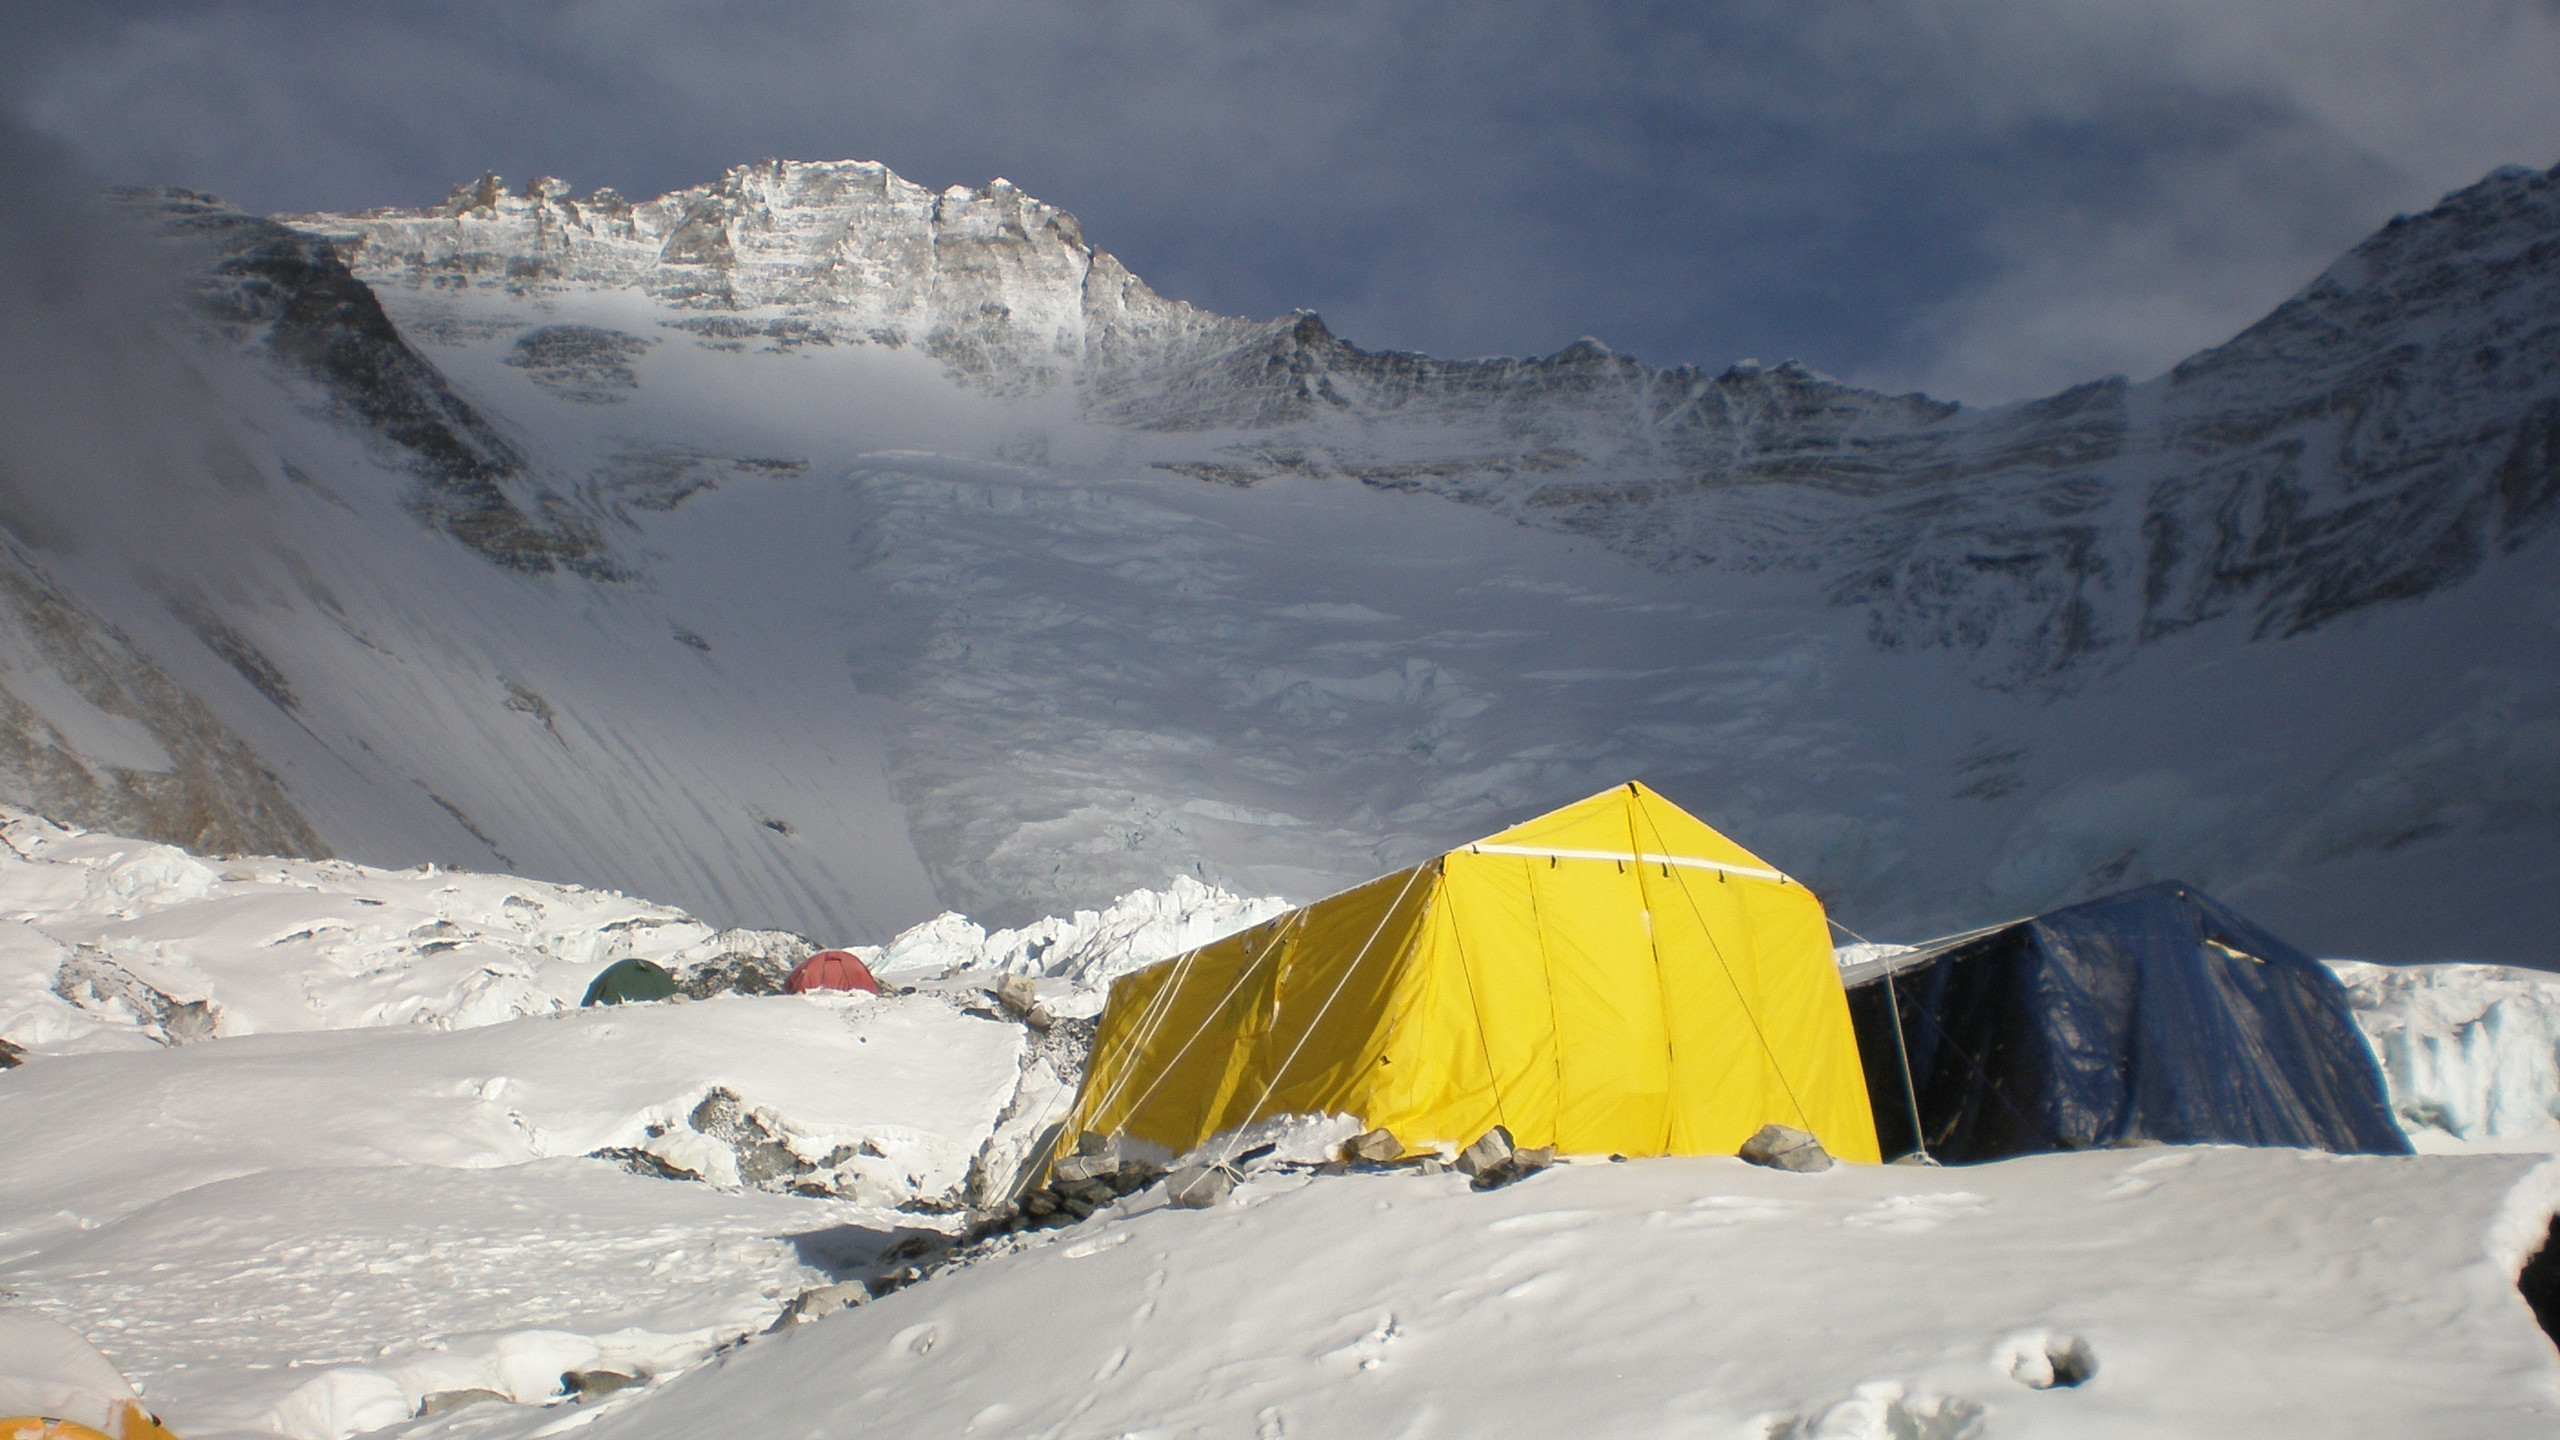 Lhotse face and camp 2